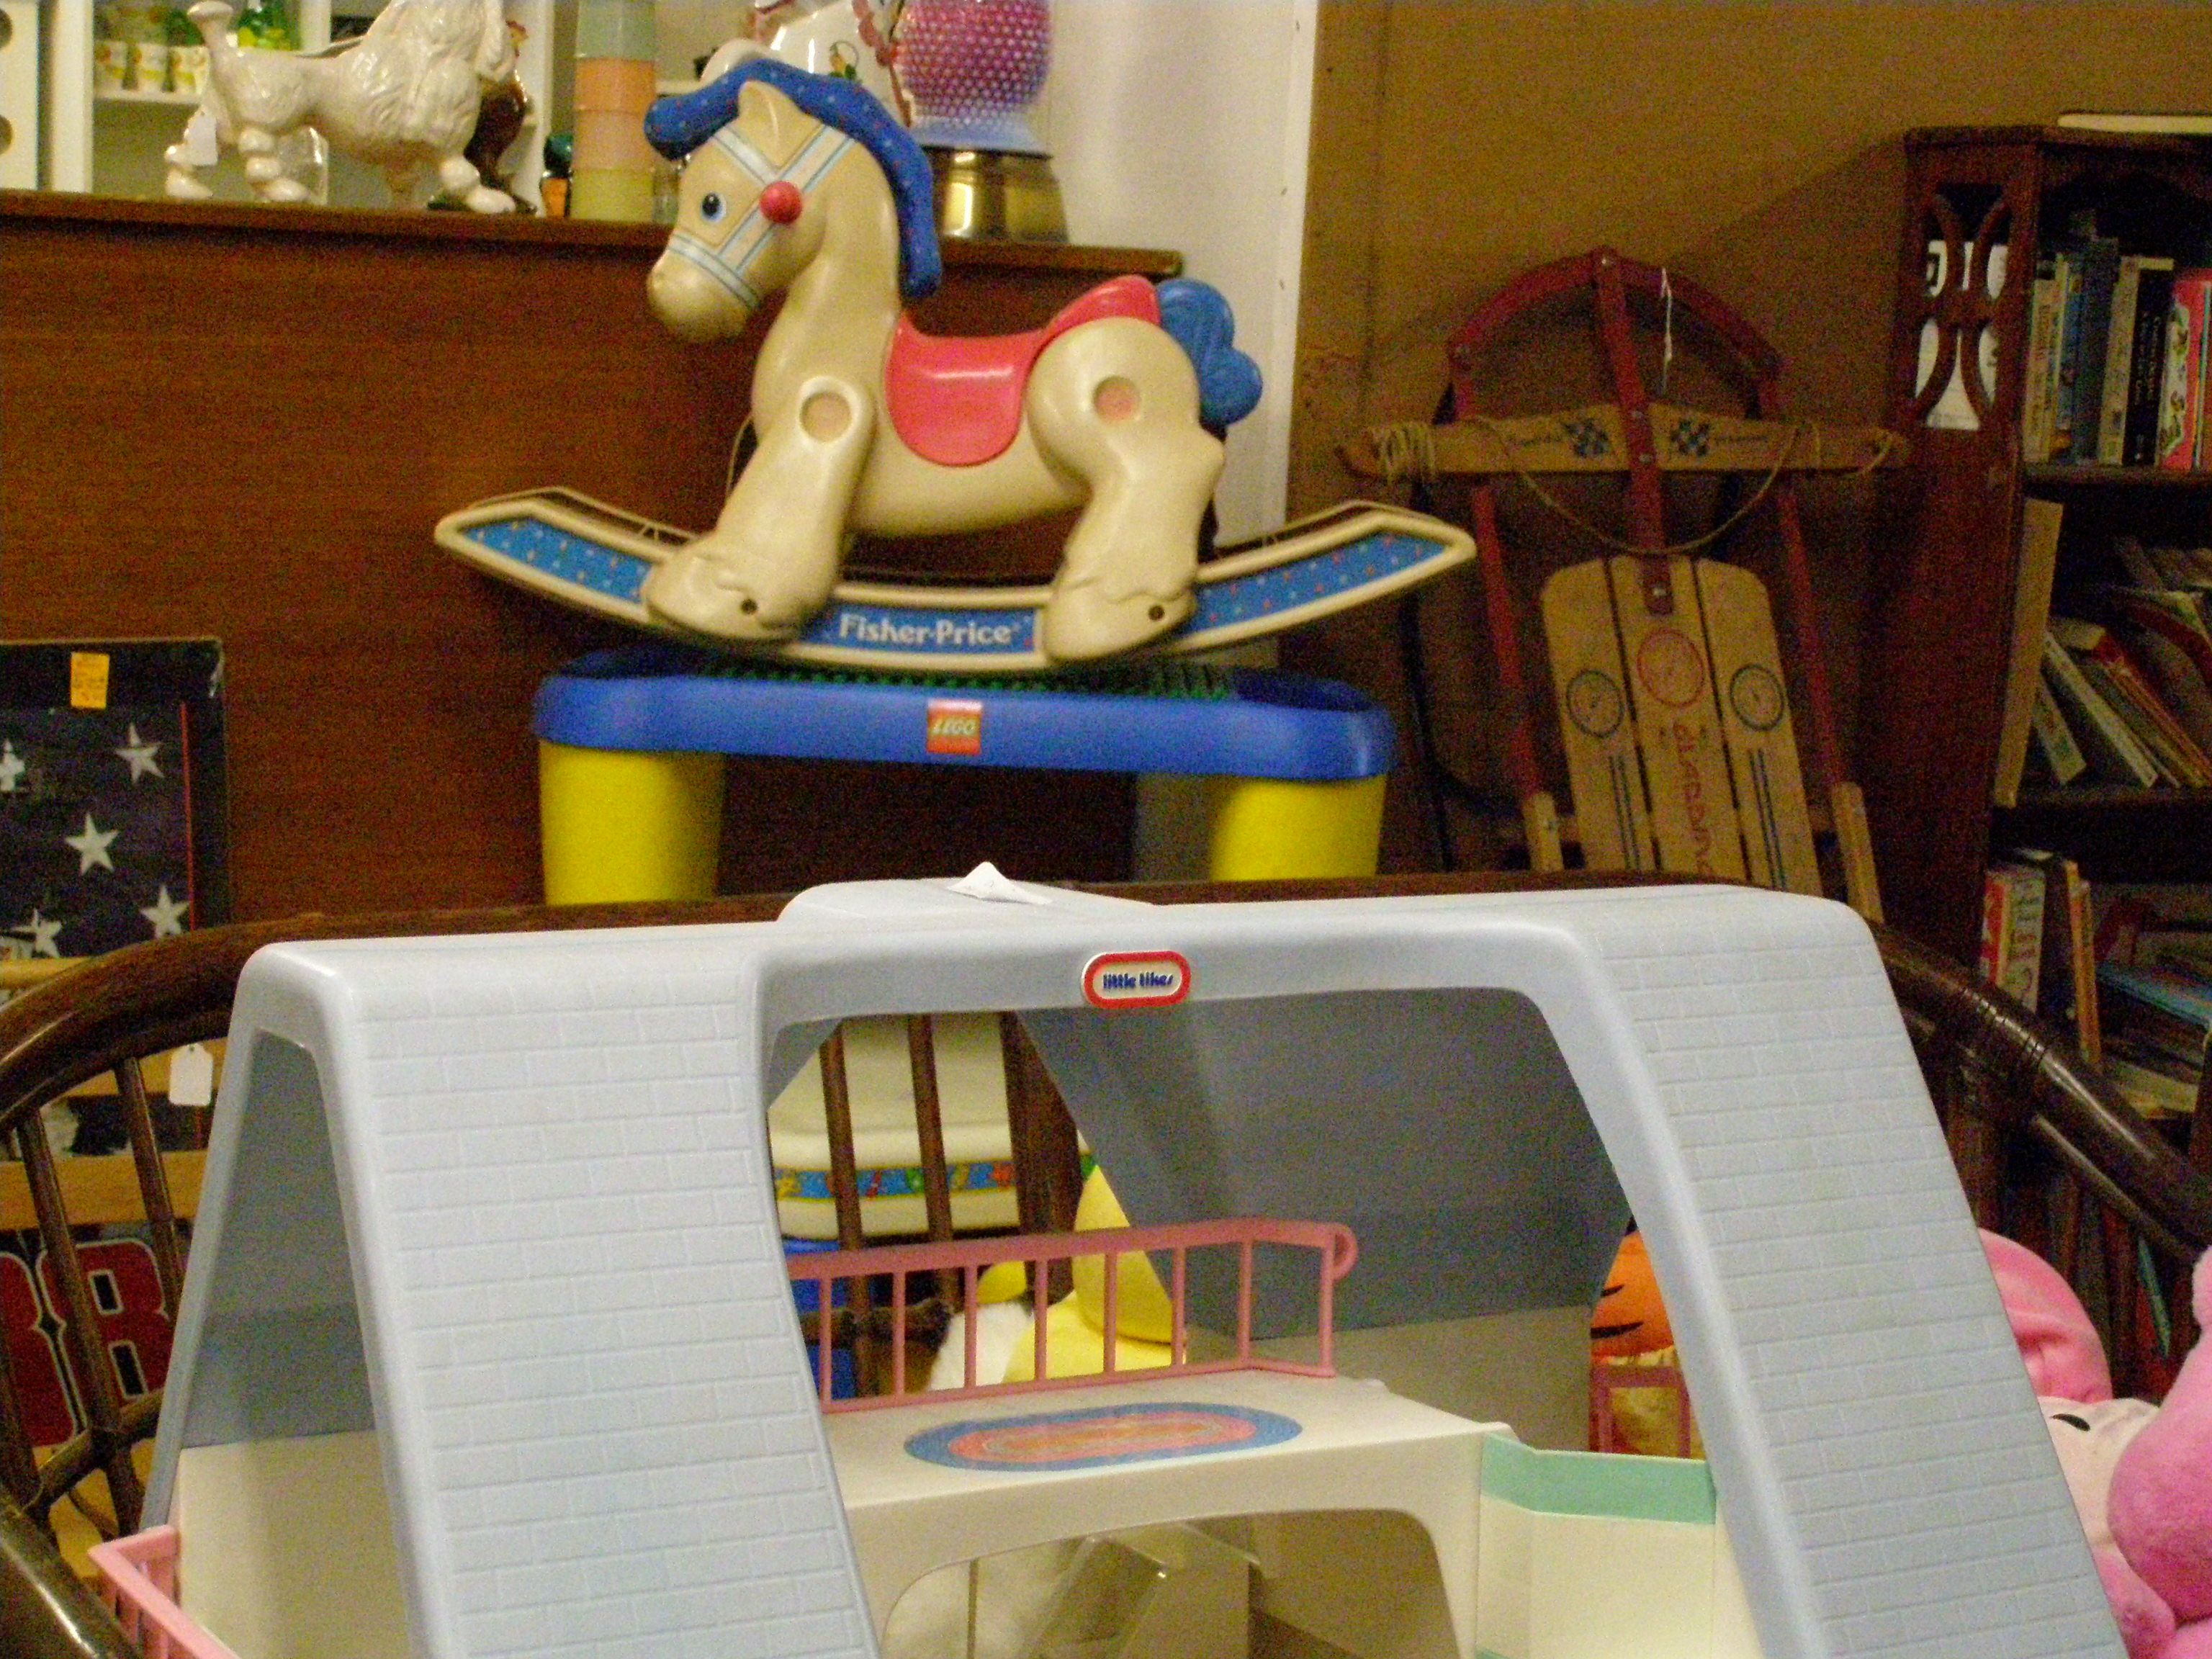 Toddler toys such as Fisher Price toys